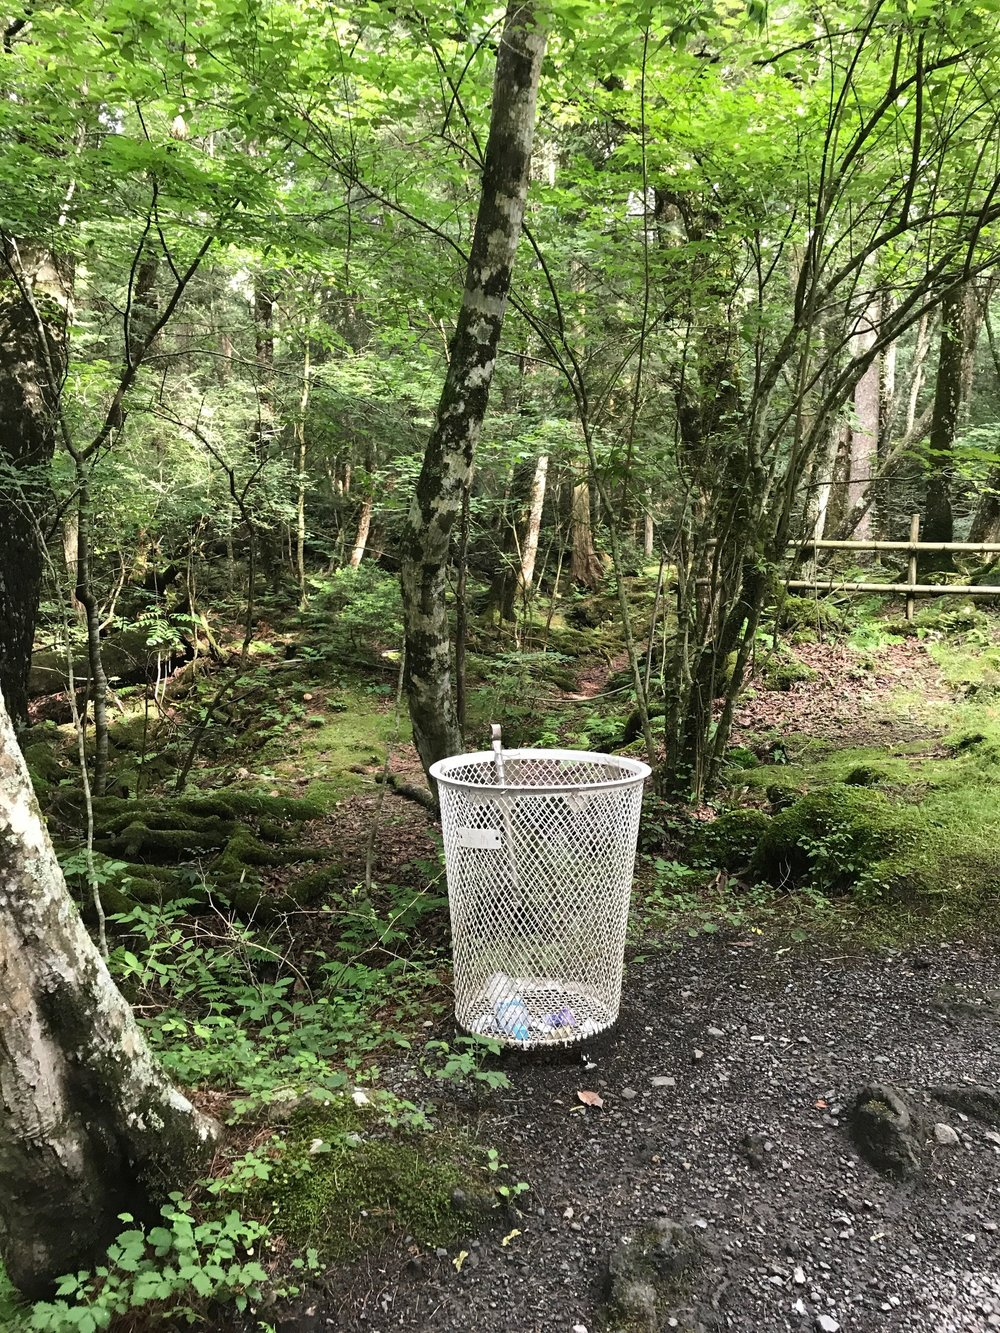 Trash can in the forest, a rare sight in Japan!